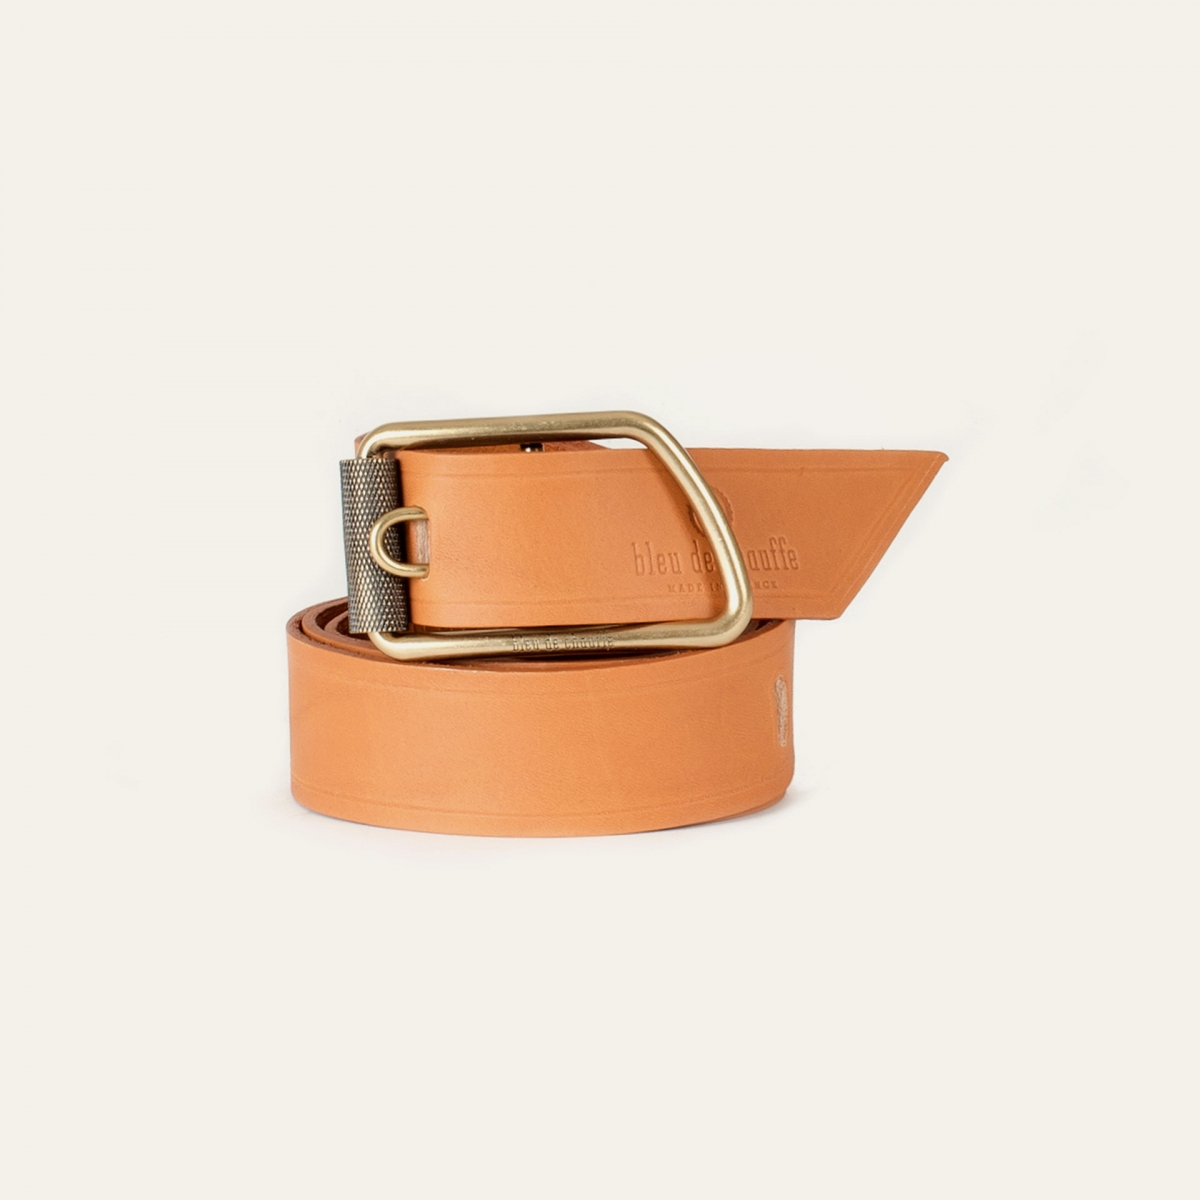 Maillon Belt - Natural (image n°2)